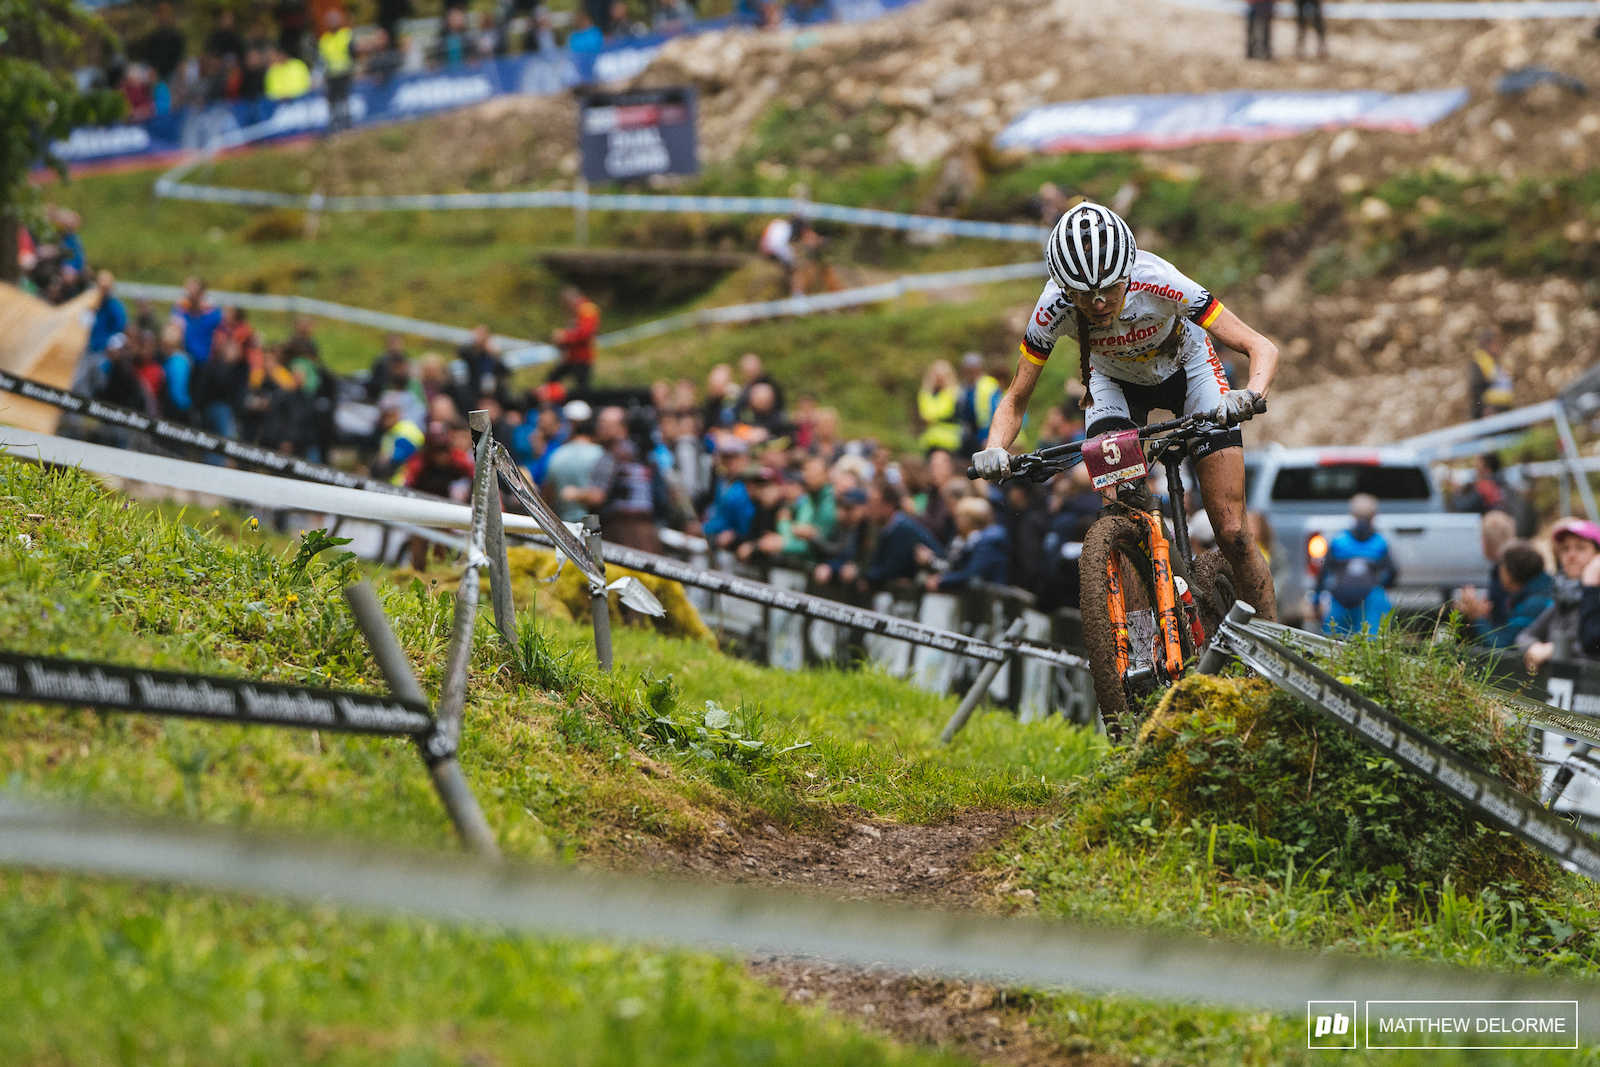 Ronja Eibl takes second place for the u23 women.